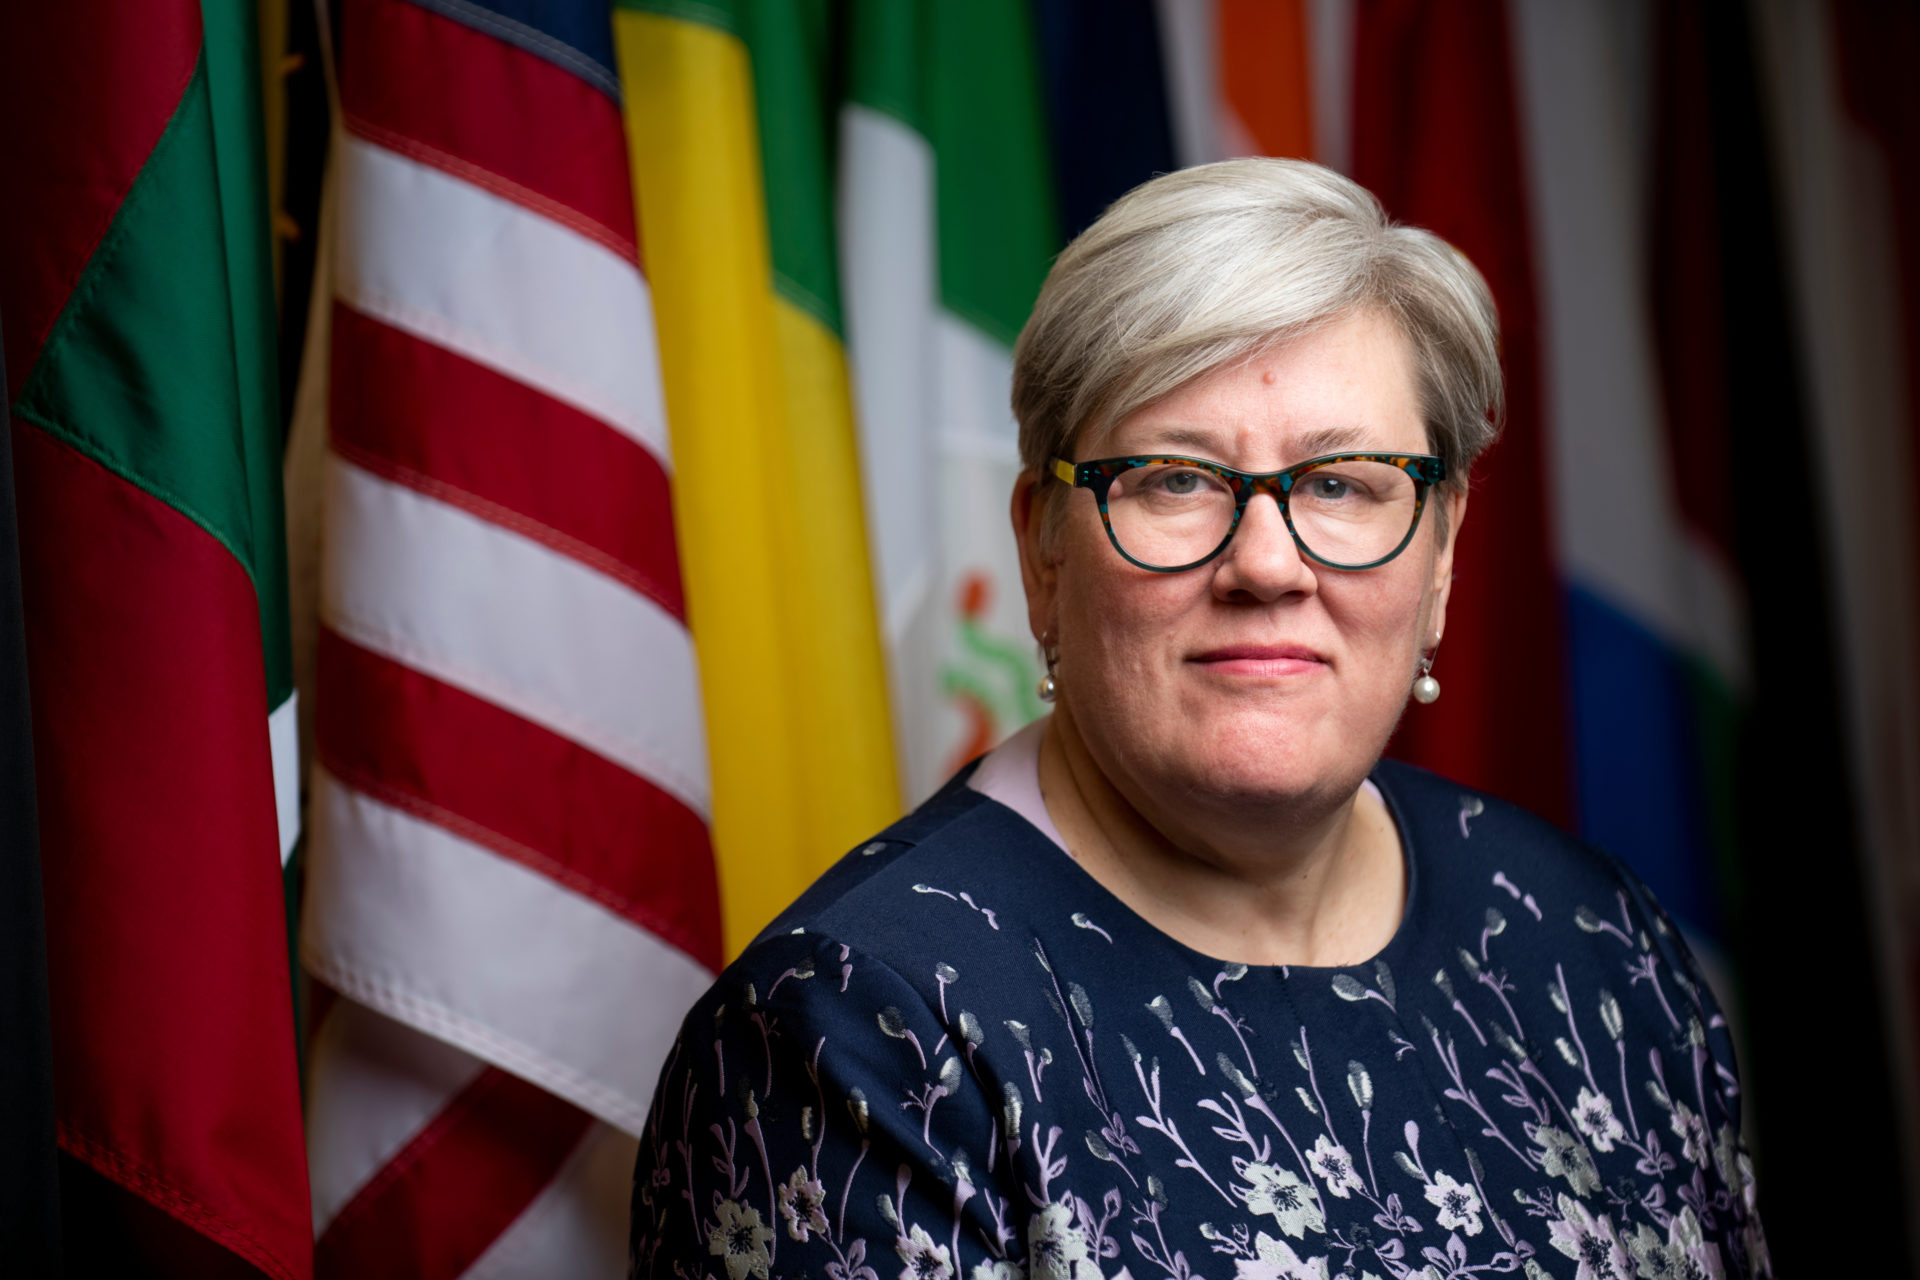 Rachel Kyte, dean of the Fletcher School of Law and Diplomacy at Tufts University. (Courtesy Alonso Nichols/Tufts University)